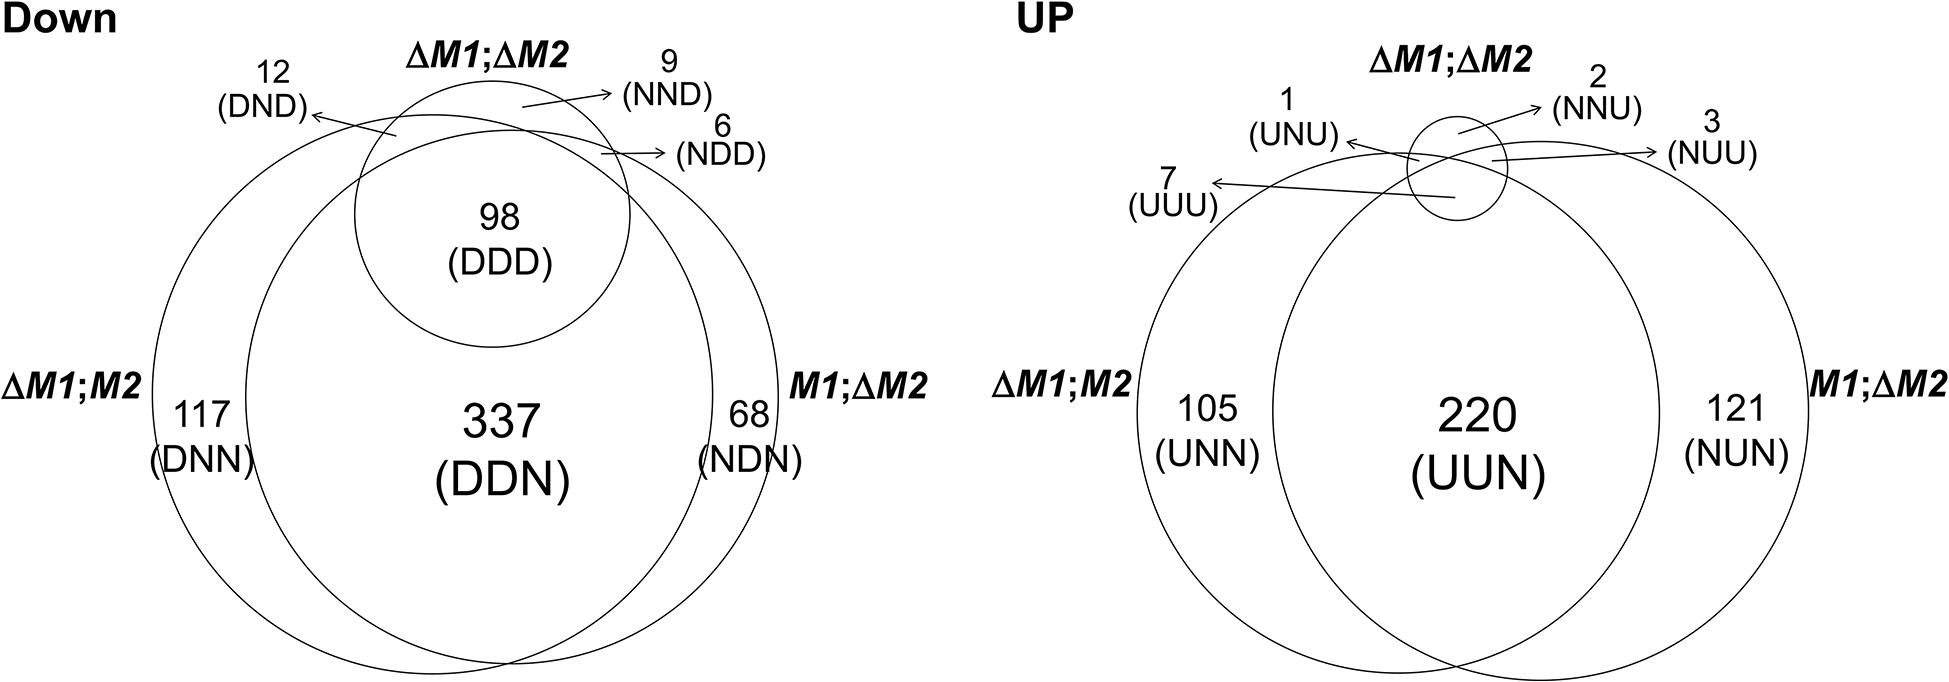 Number of genes expressed differentially in the <i>F</i>. <i>graminearum</i> strains deleted for the <i>MAT1-1</i> locus (0394<i>M1</i>;<i>M2</i>), <i>MAT1-2</i> locus (<i>M1</i>; Δ<i>M2</i>), and both <i>MAT1-1</i> and <i>MAT1-2</i> loci (Δ<i>M1</i>; Δ <i>M2</i>) compared to their wild-type progenitor Z3643.